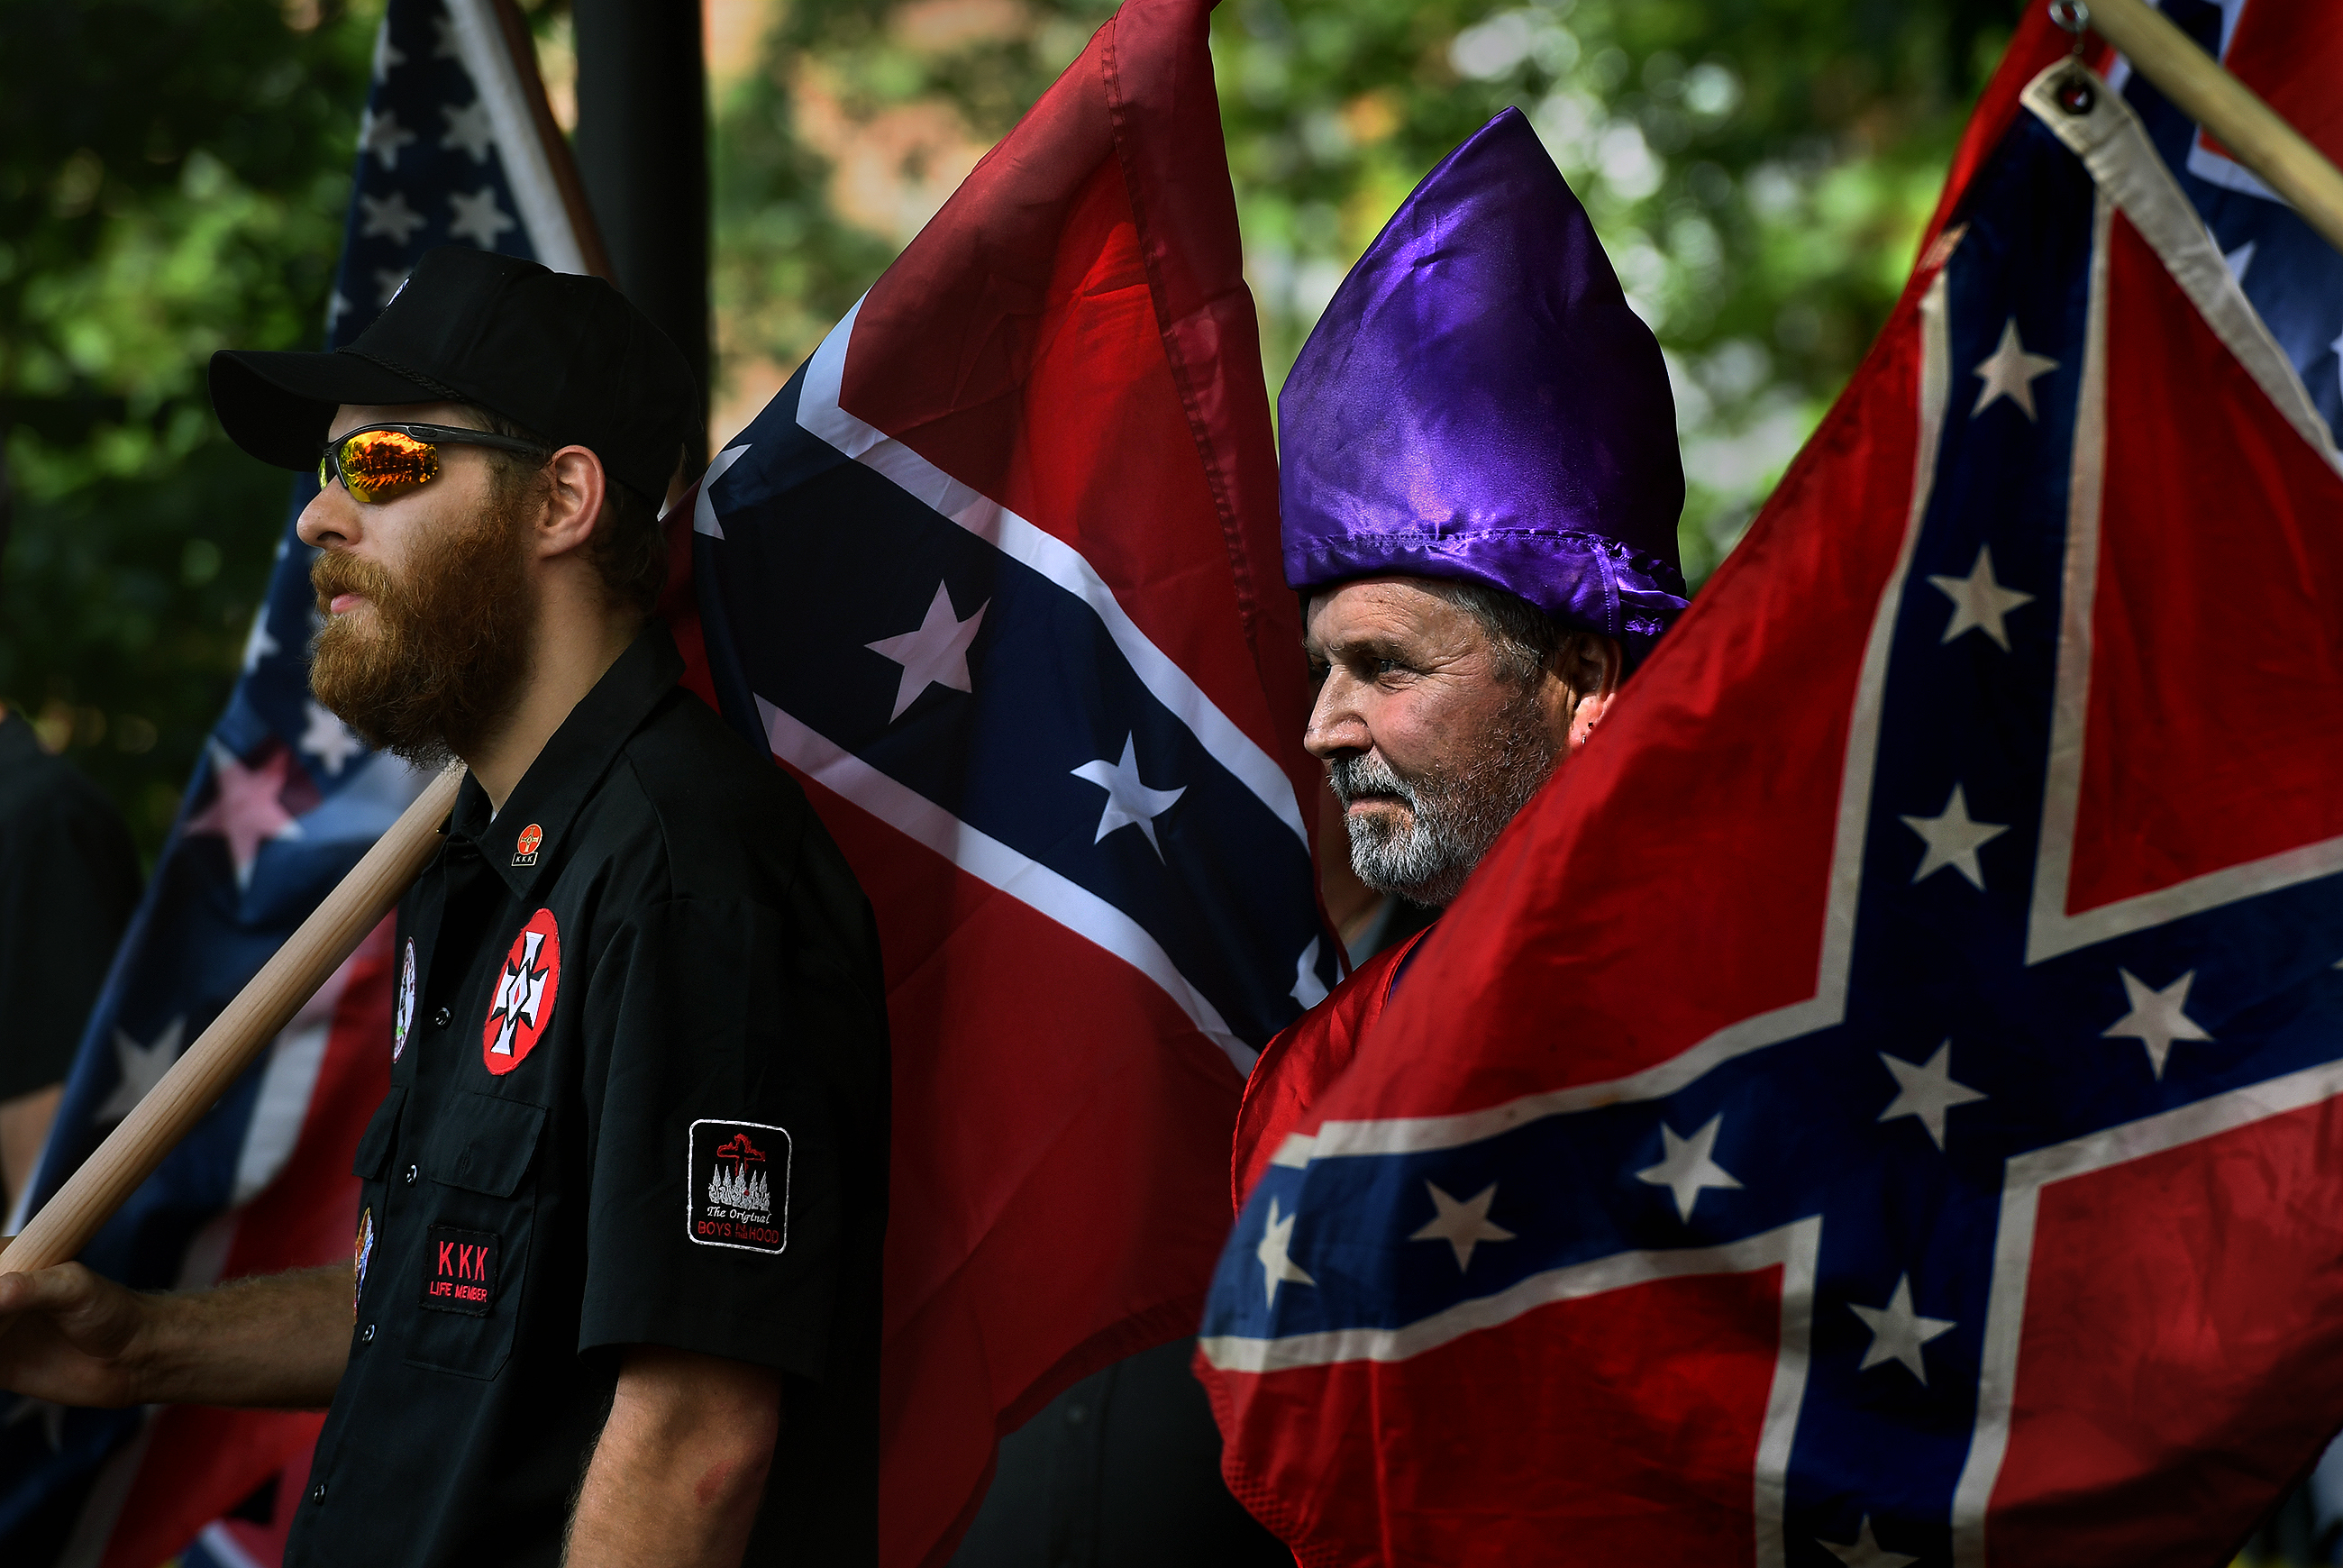 KKK members watch as anti-KKK groups chanted against them.